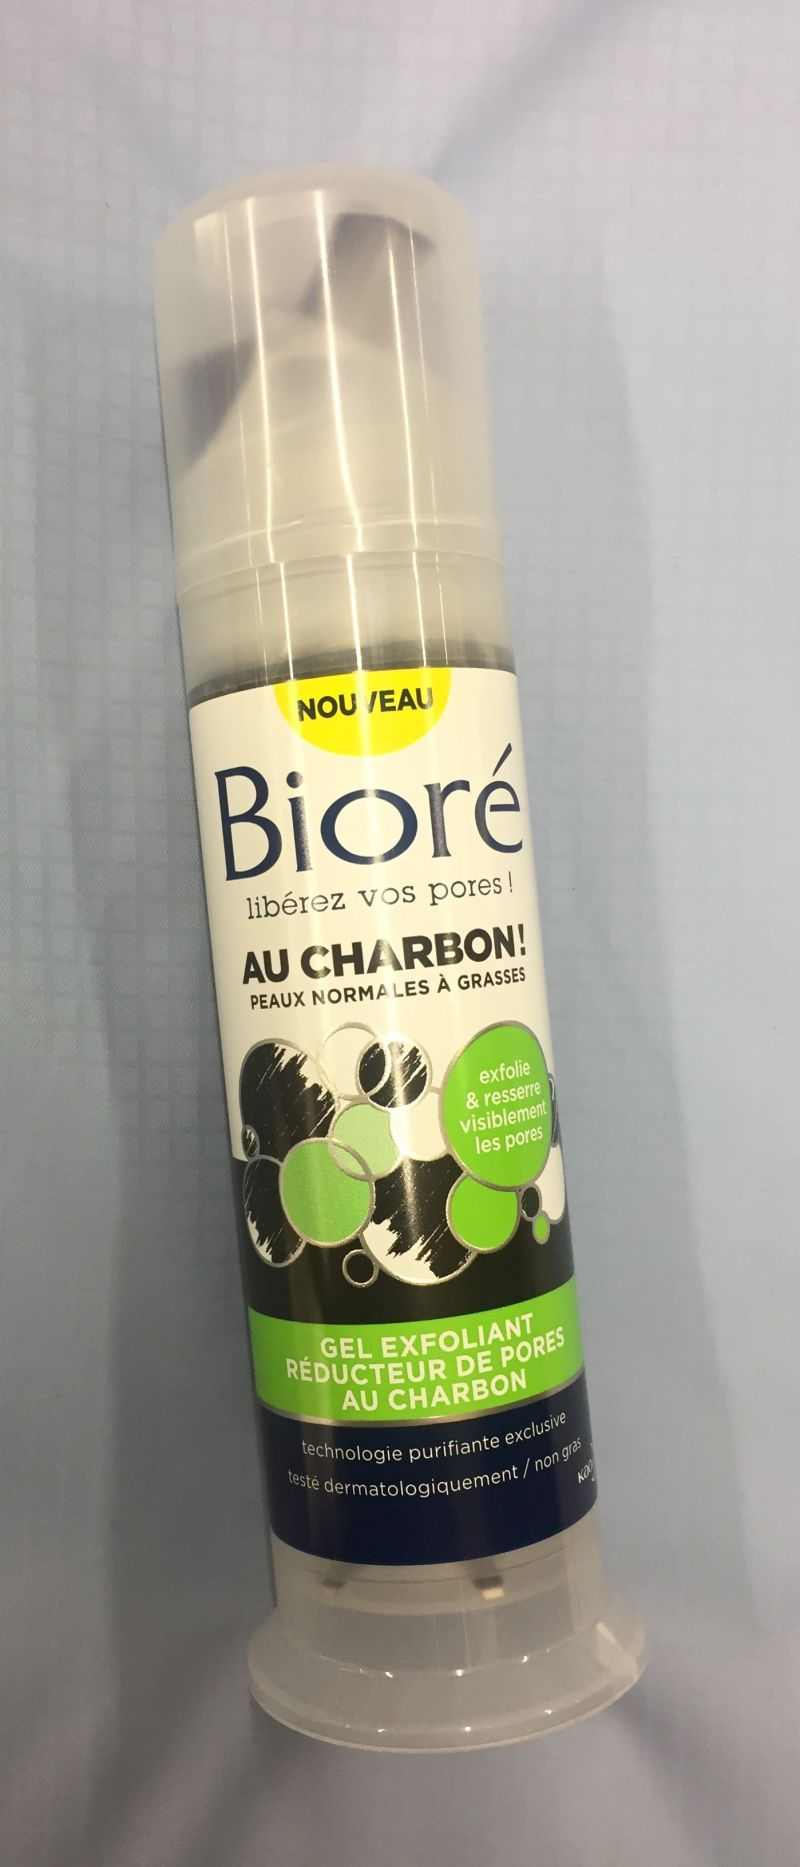 Swatch Gel exfoliant, Bioré